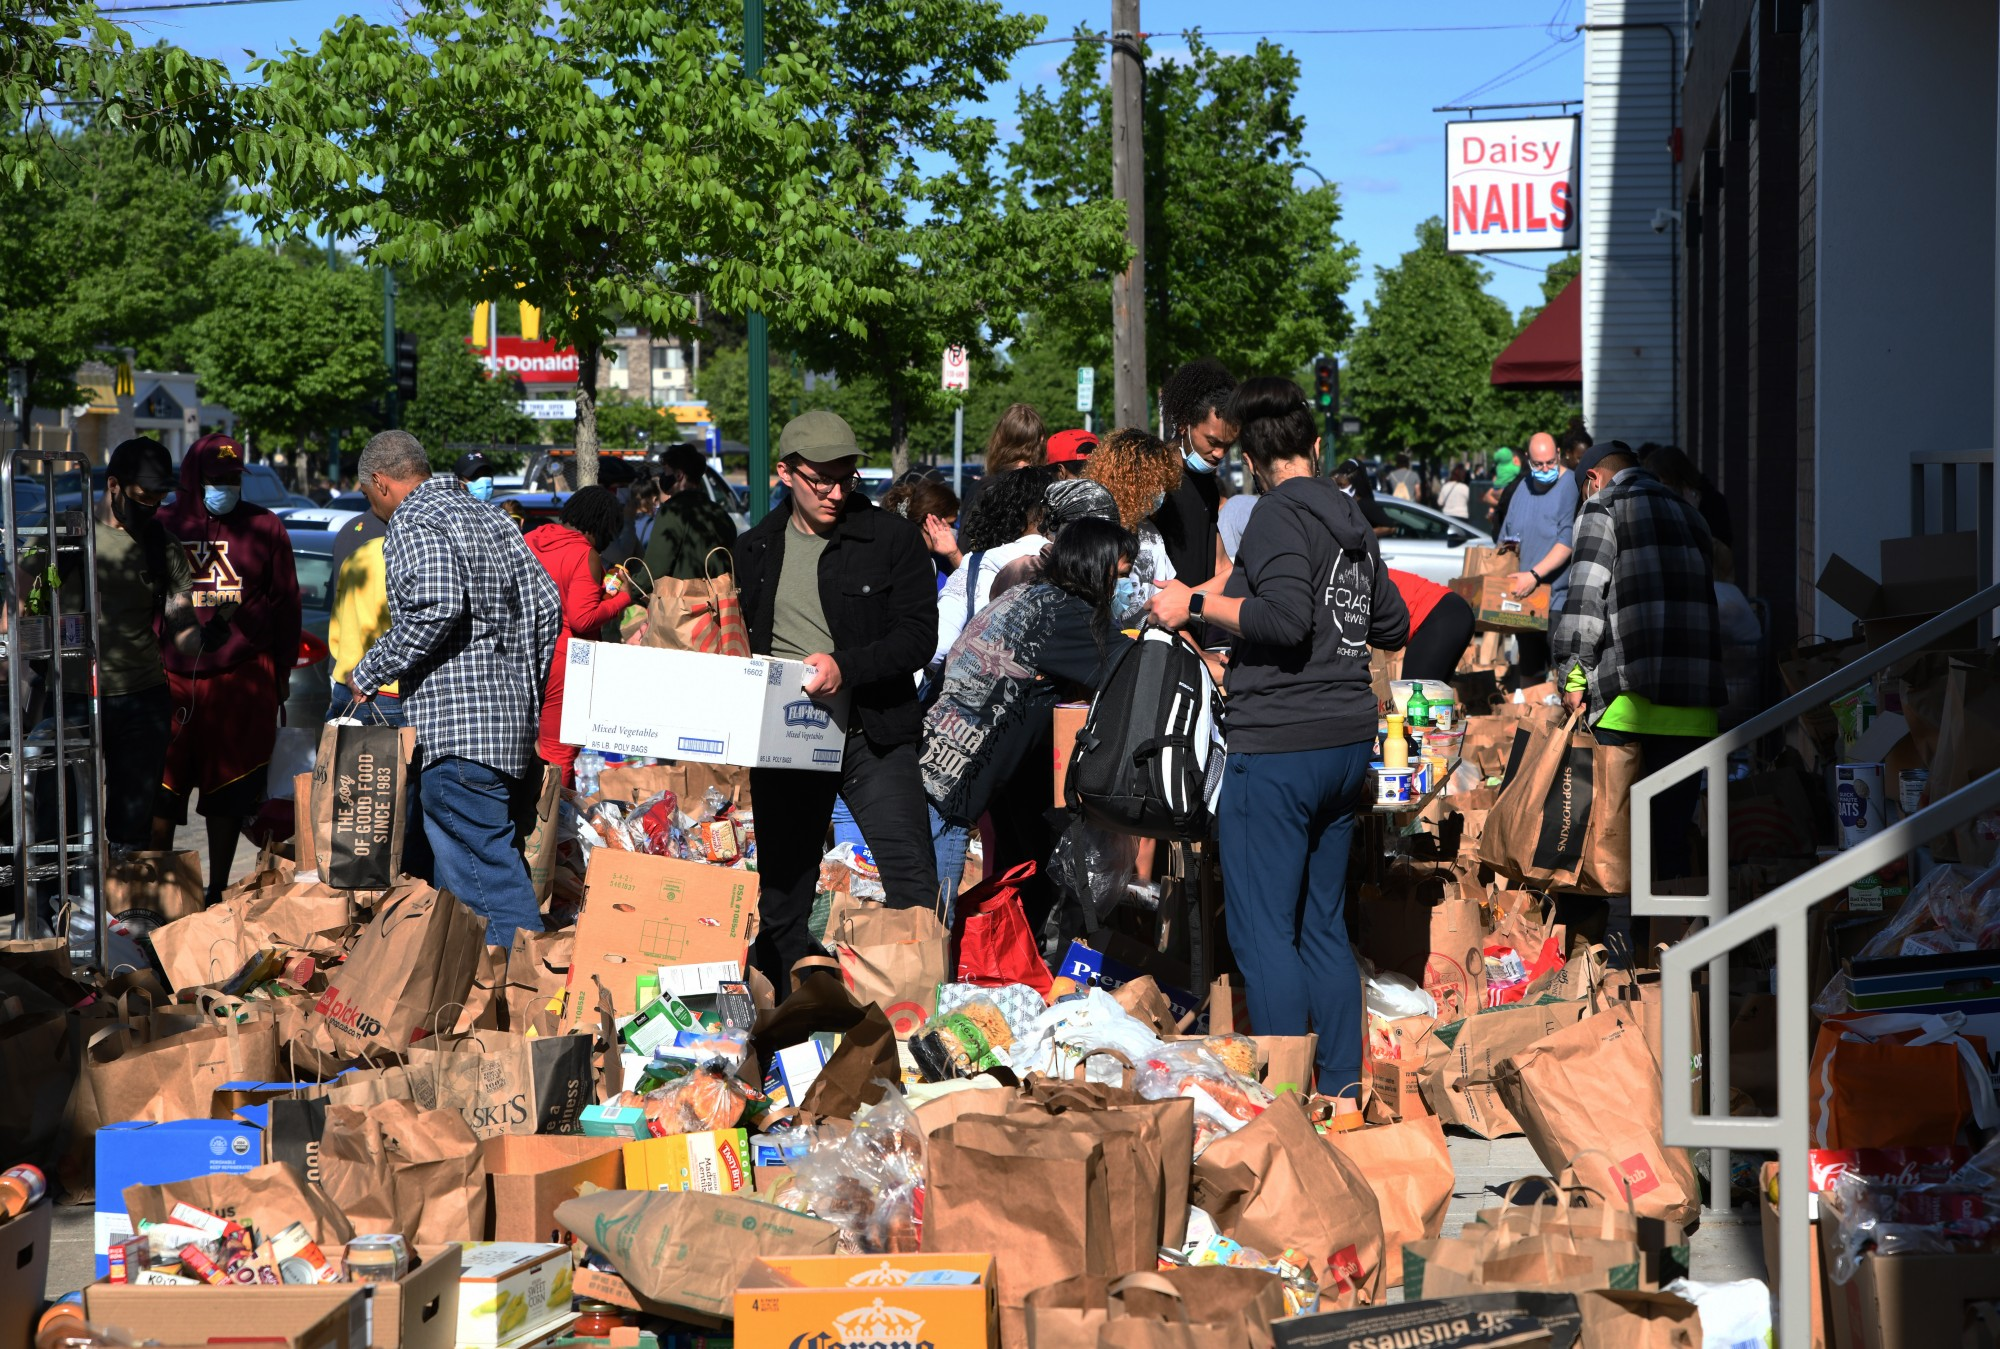 People drop off donations and take what they need from an impromptu community food shelf in front of Minnehaha Commons on East Lake Street near the Minneapolis 3rd Police Precinct on Friday, May 29.